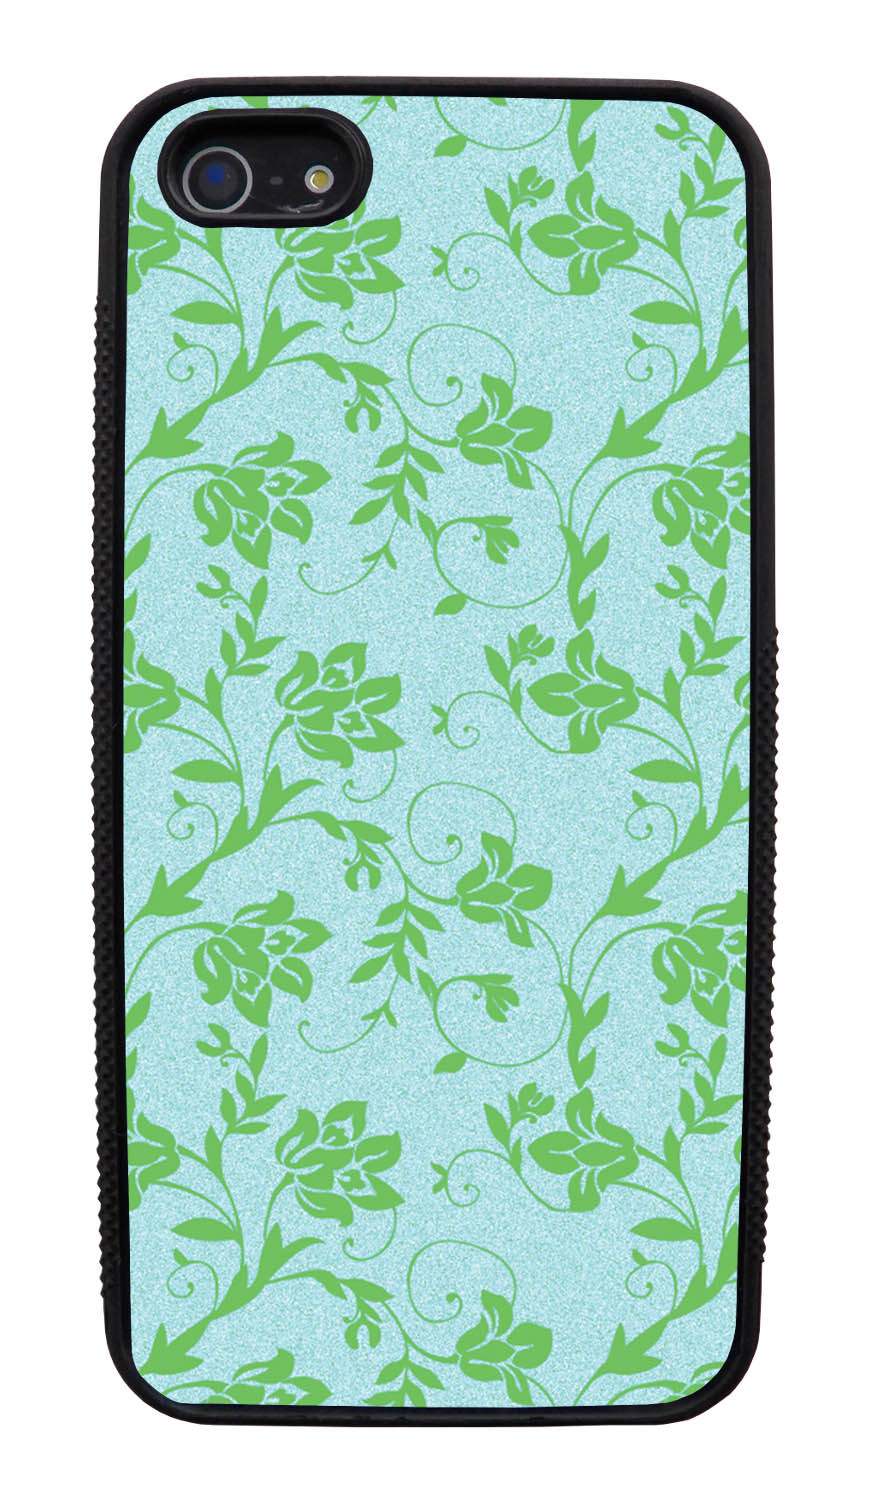 Apple iPhone 5 / 5S Flower Case - Green on Textured Light Blue - Stencil Cutout - Black Slim Rubber Case